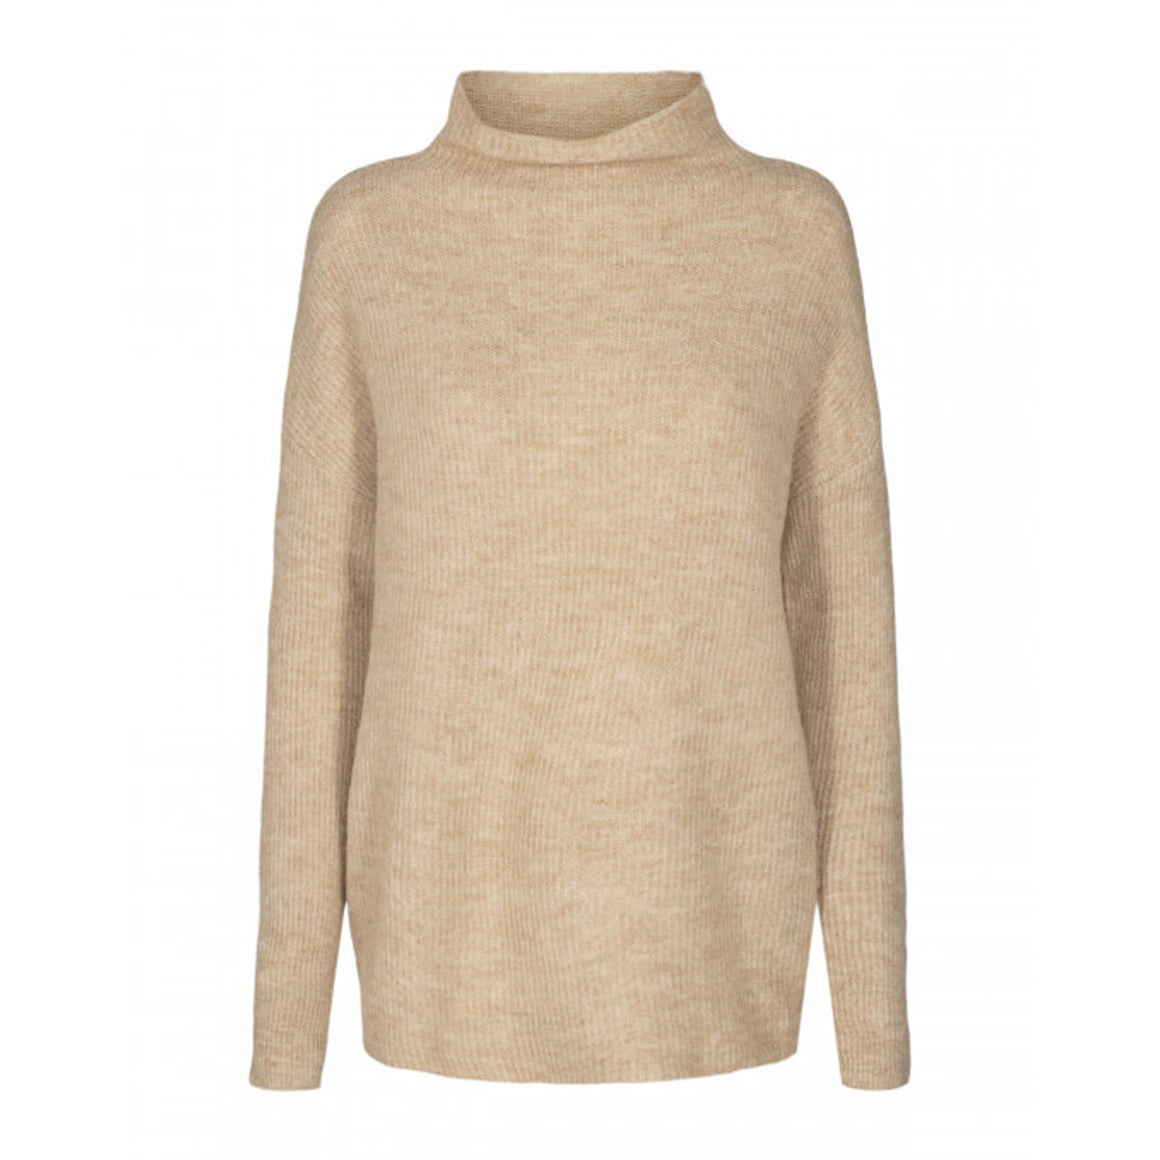 Nessie Rib Knit for Women in Stone